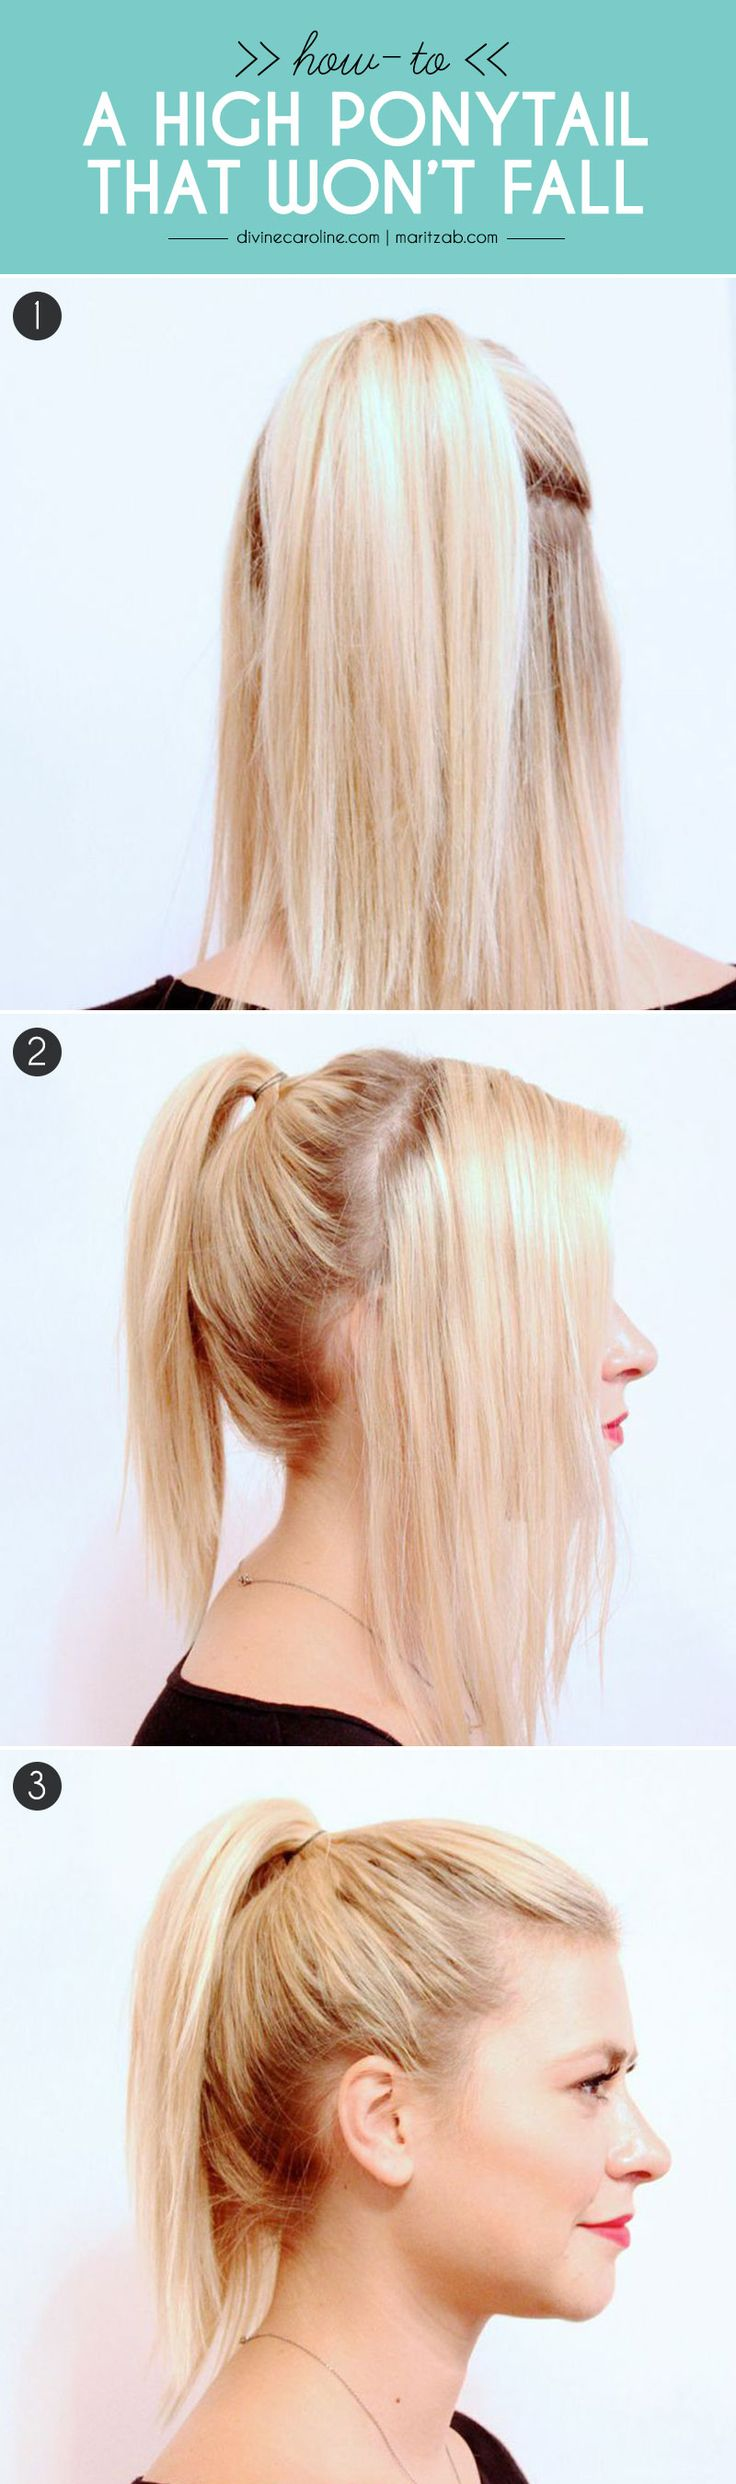 This high ponytail is playful, sexy, and full of body! Use these tips and tricks to make yours look pretty and fresh throughout the day. #hair